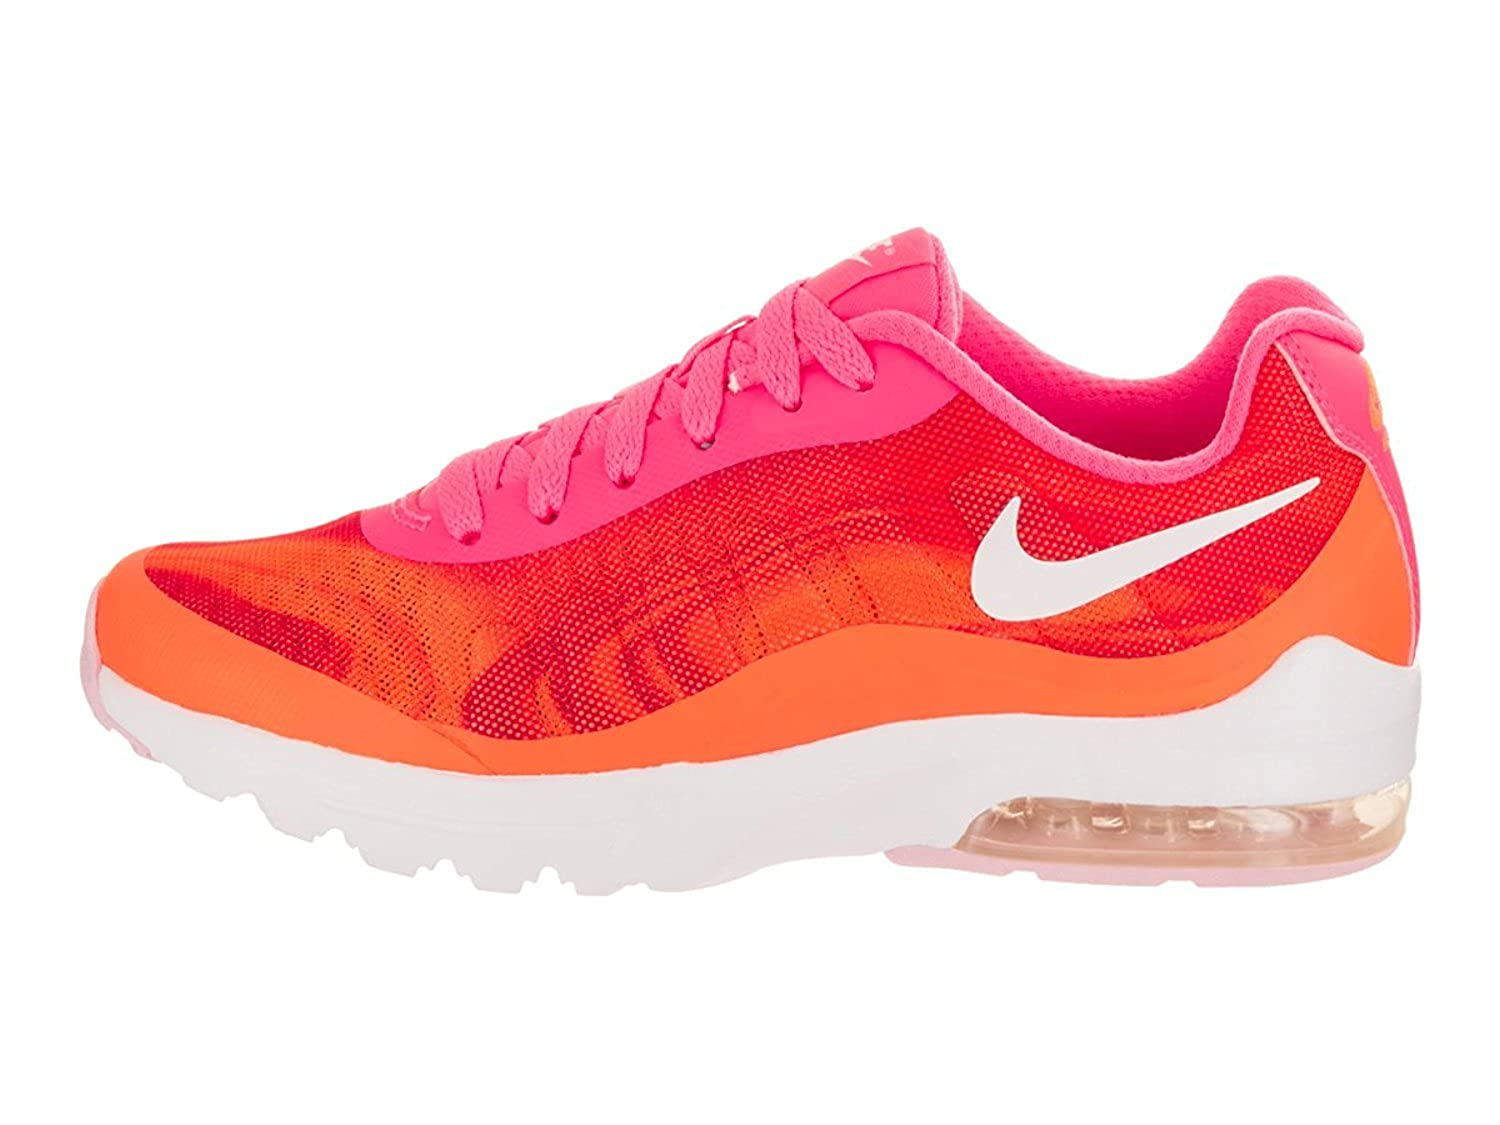 Nike Women's Air Max Invigor Print Running Shoe, Racer Pink